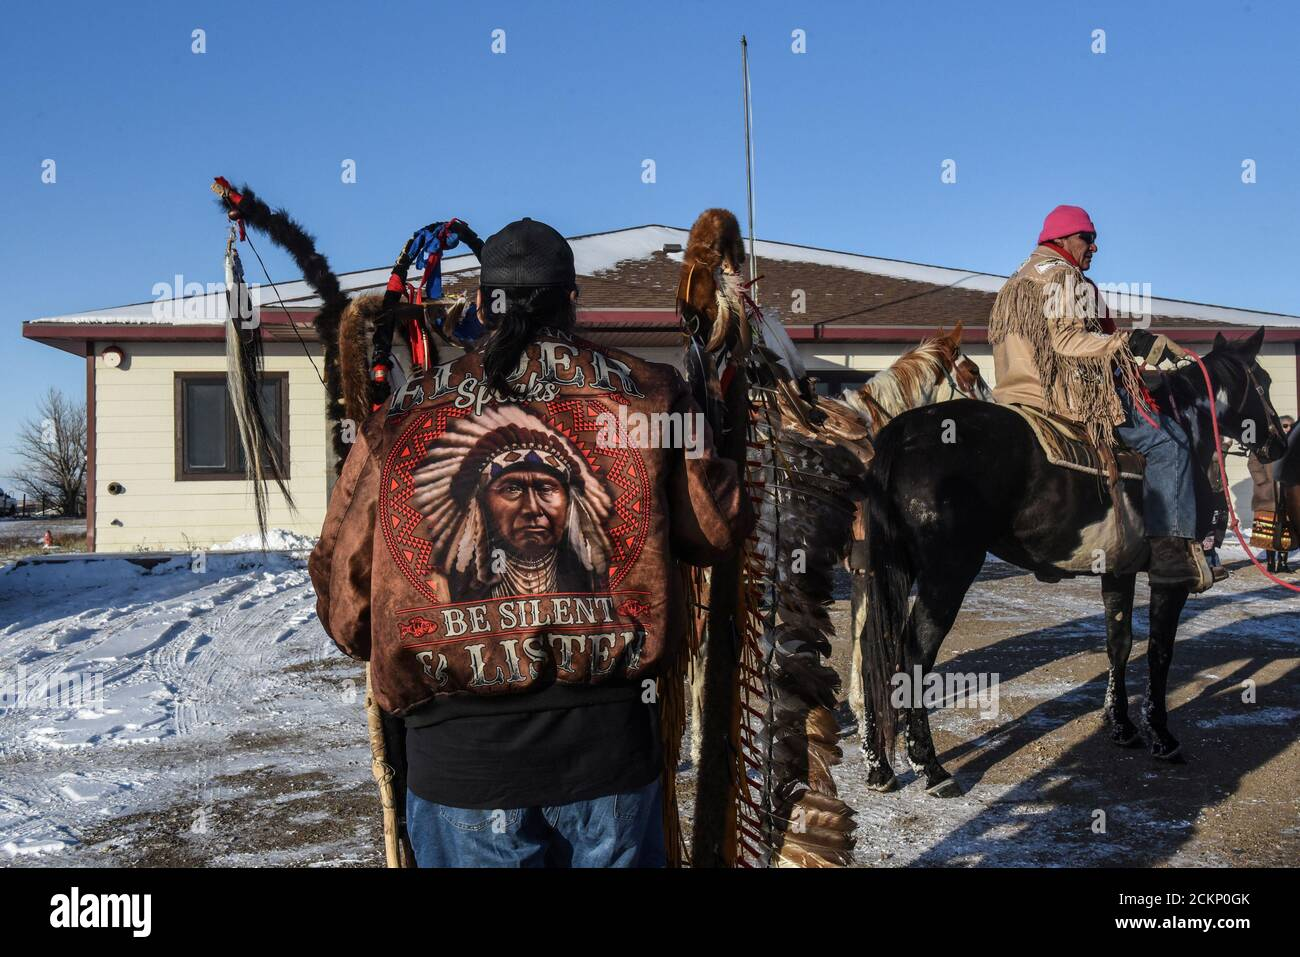 Lakota riders arrive at the government building where they will meet Brad Upton, descendant of the commander of the Wounded Knee massacre on the Cheyenne River reservation in Eagle Butte, South Dakota, November 6, 2019. Picture taken November 6, 2019 REUTERS/Stephanie Keith Stock Photo